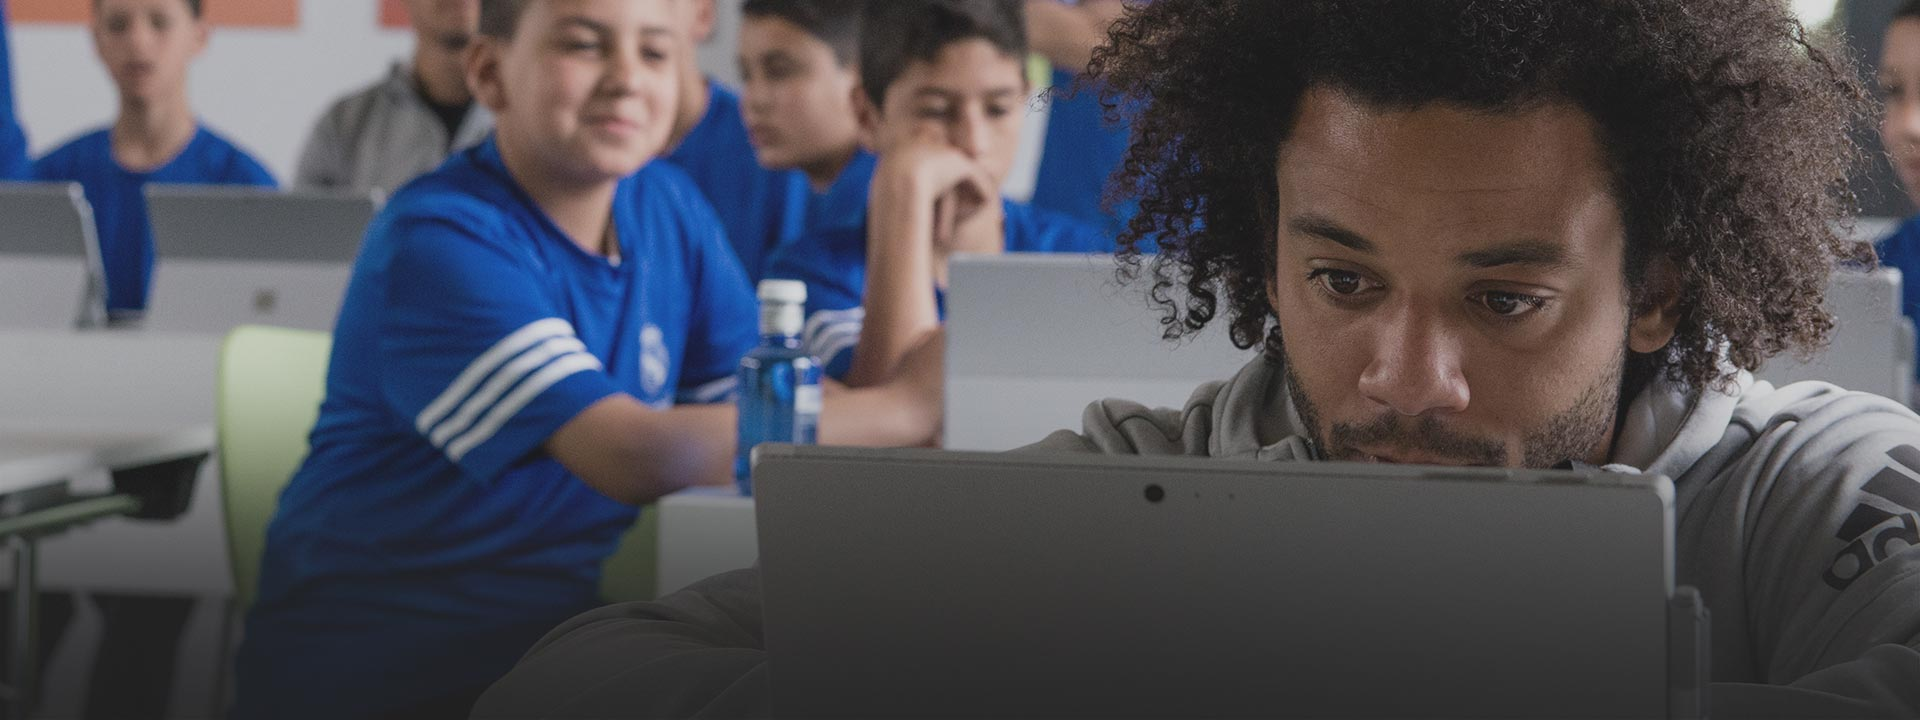 Kids and PCs, see how we provide access to technology